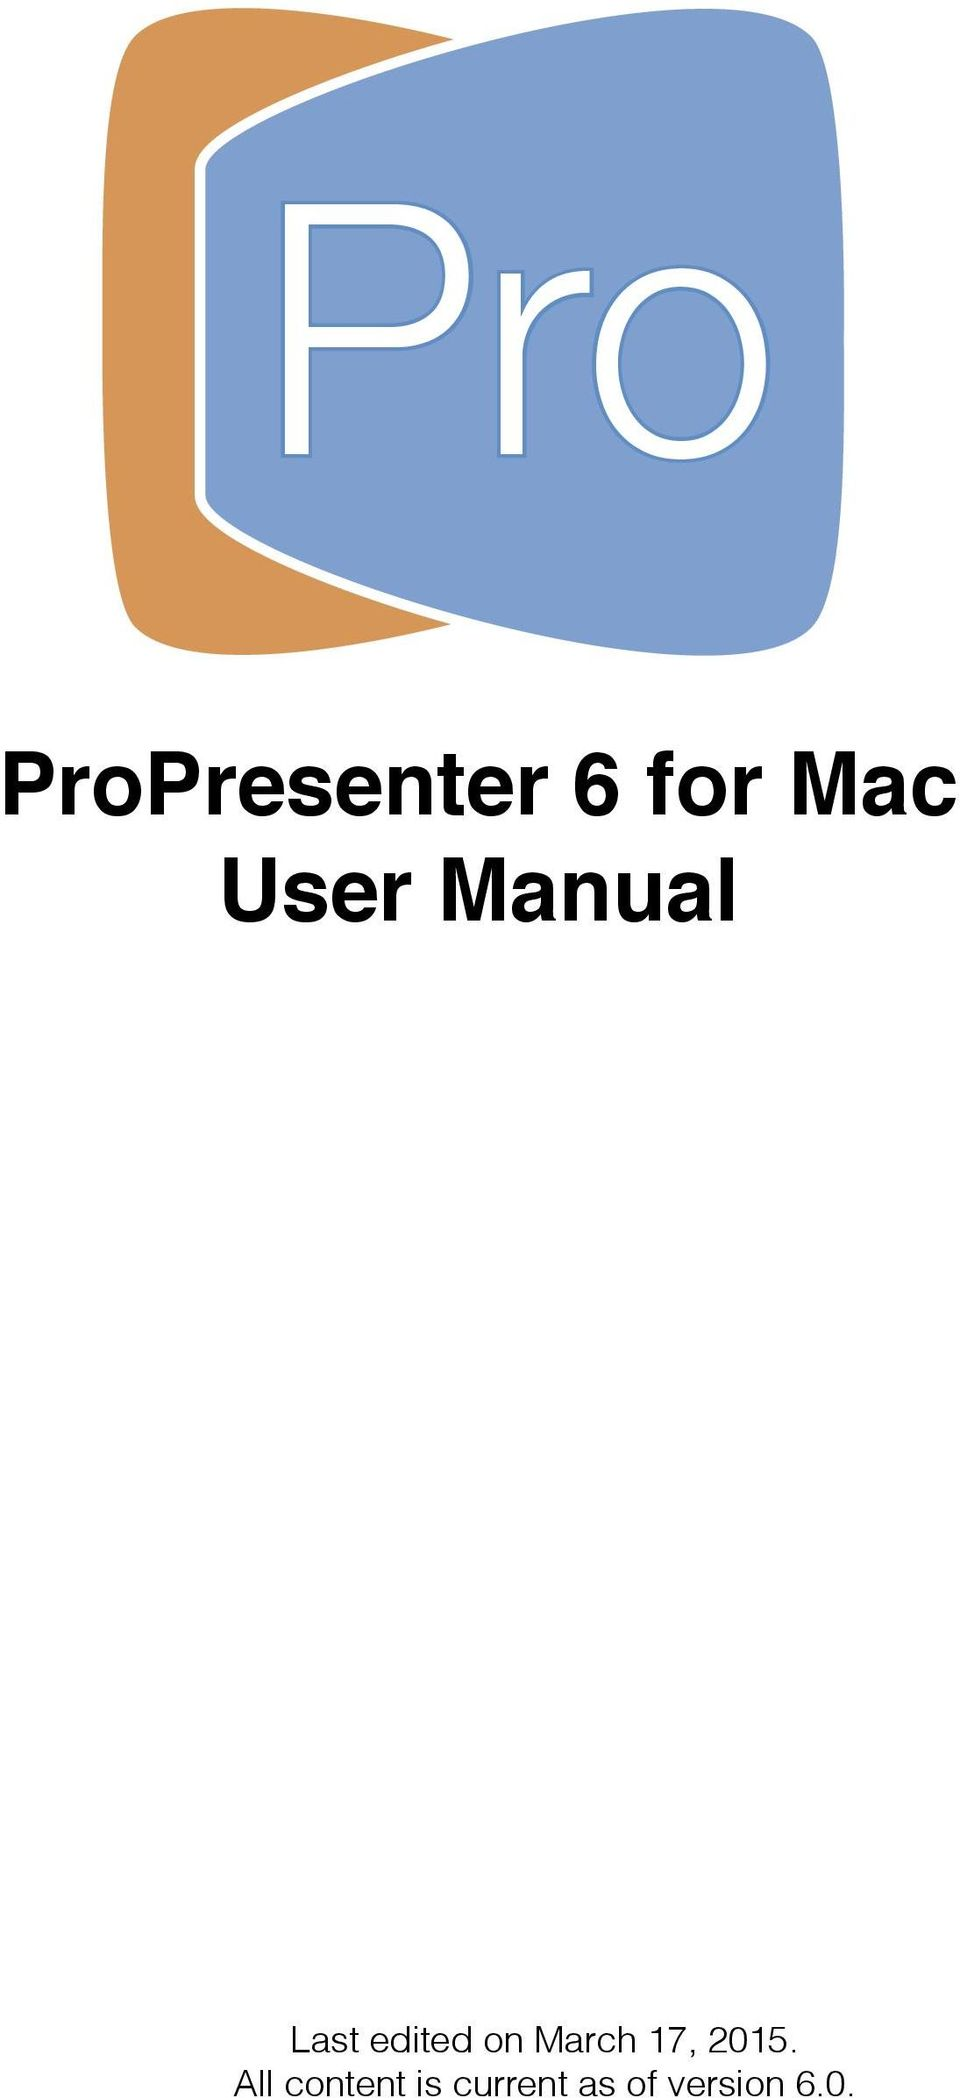 Pro  ProPresenter 6 for Mac User Manual  Last edited on